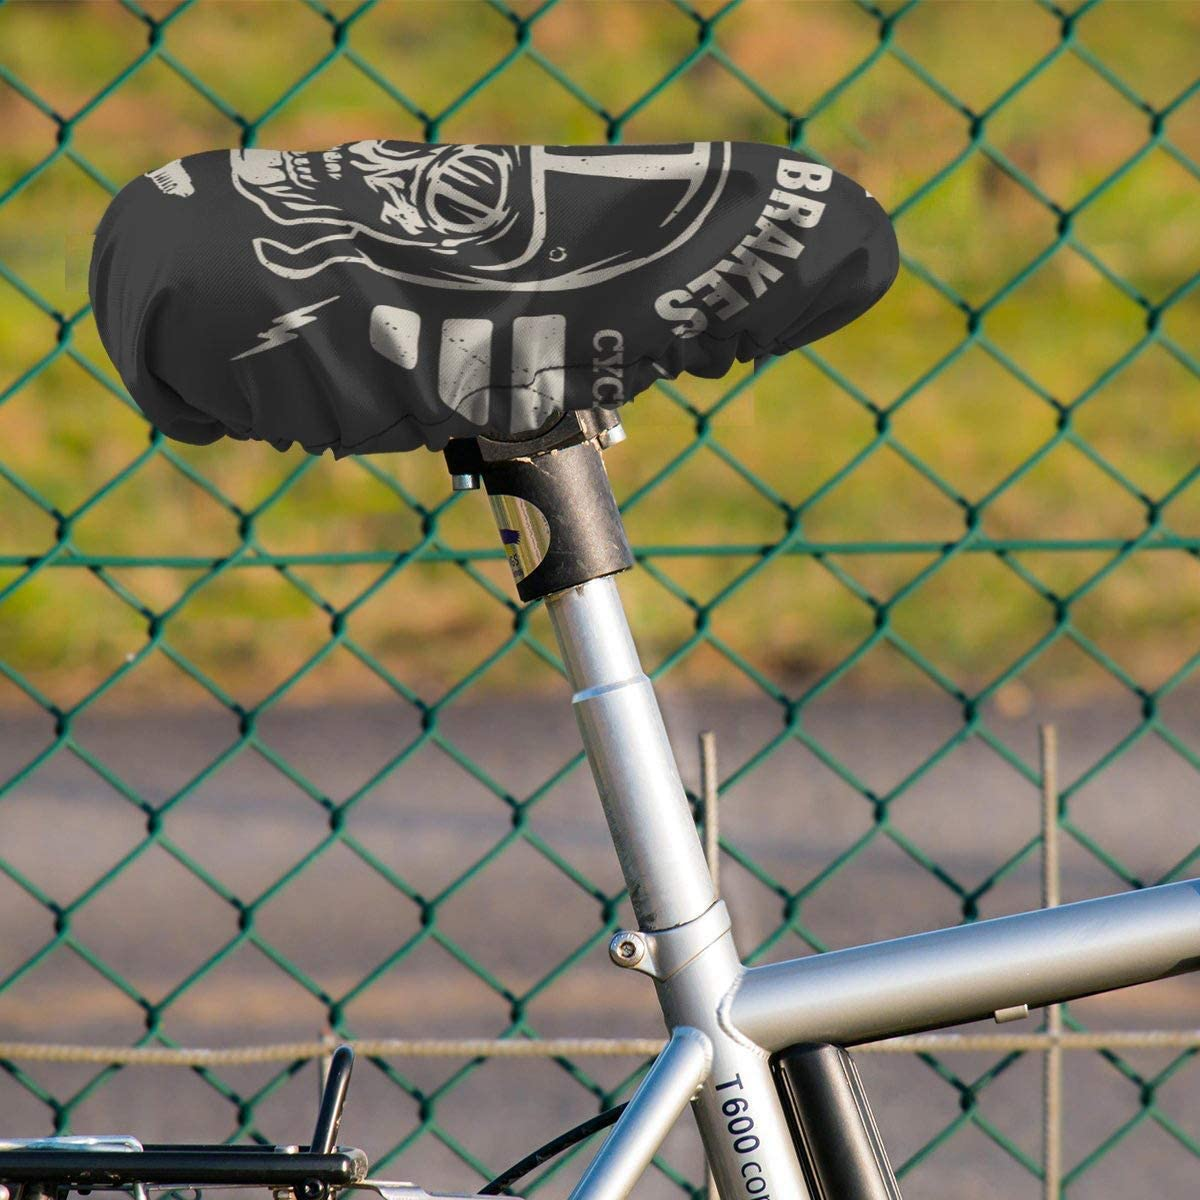 Not Applicable Flamingo Bird Extra Soft Bicycle Seat Bike Saddle Cushion With Water/&Dust Resistant Cover